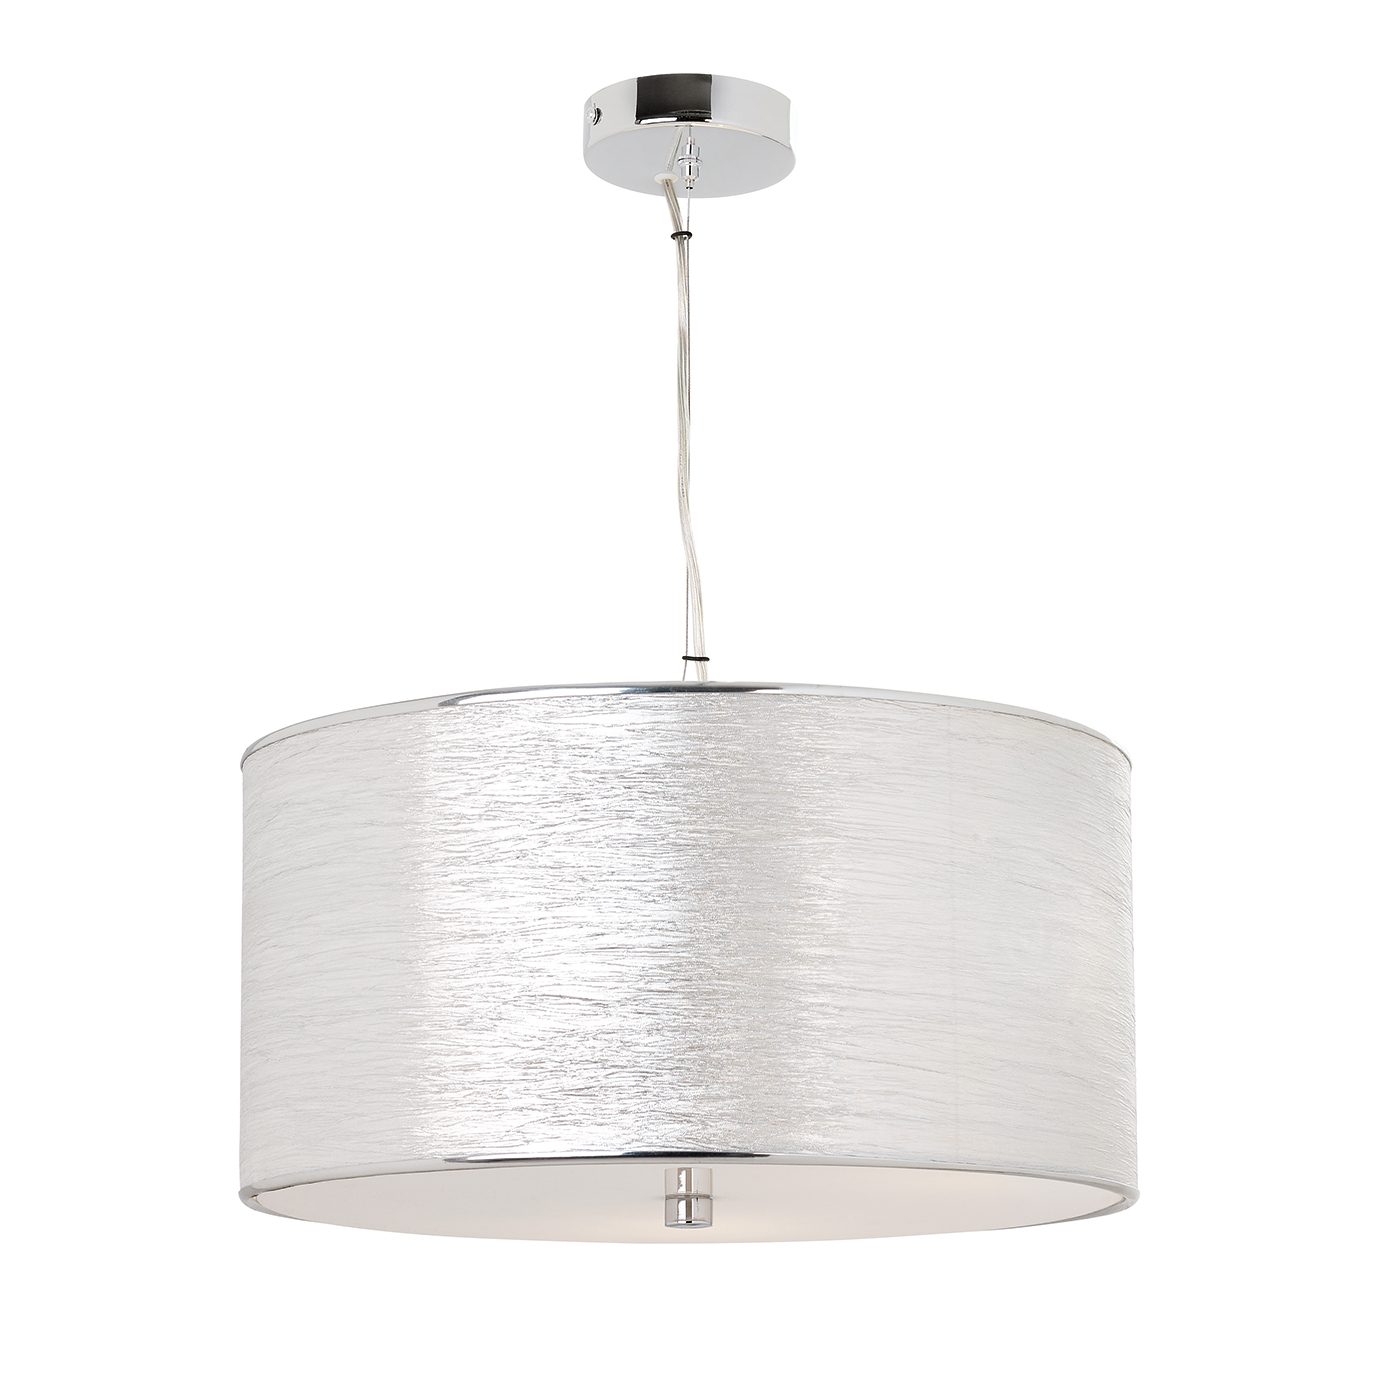 Endon Rebolo pendant 3x 60W Silver lame effect fabric & frosted acrylic Thumbnail 1